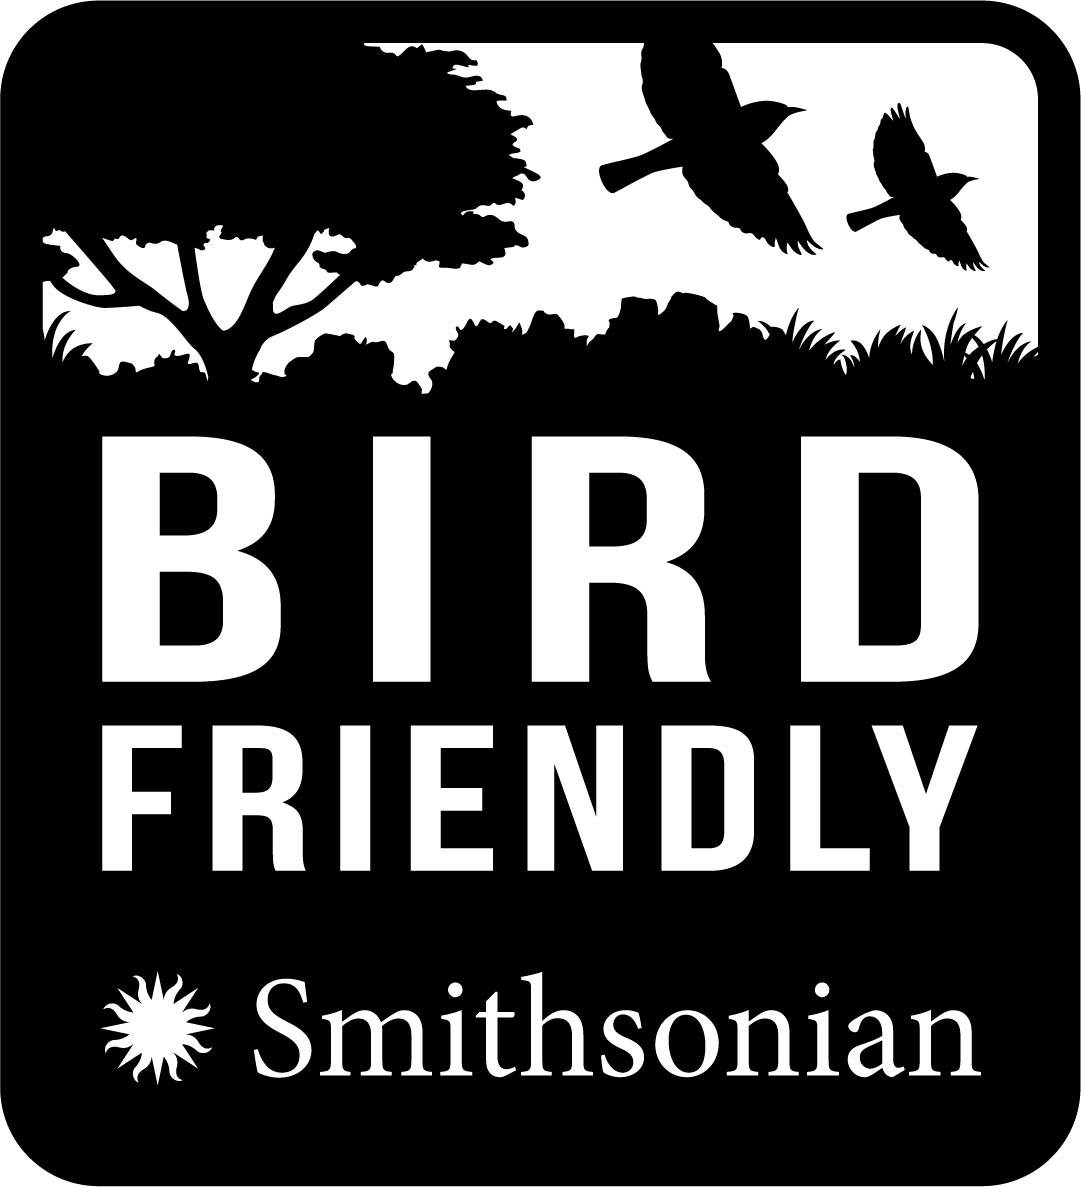 Smithsonian-Bird friendly coffee label